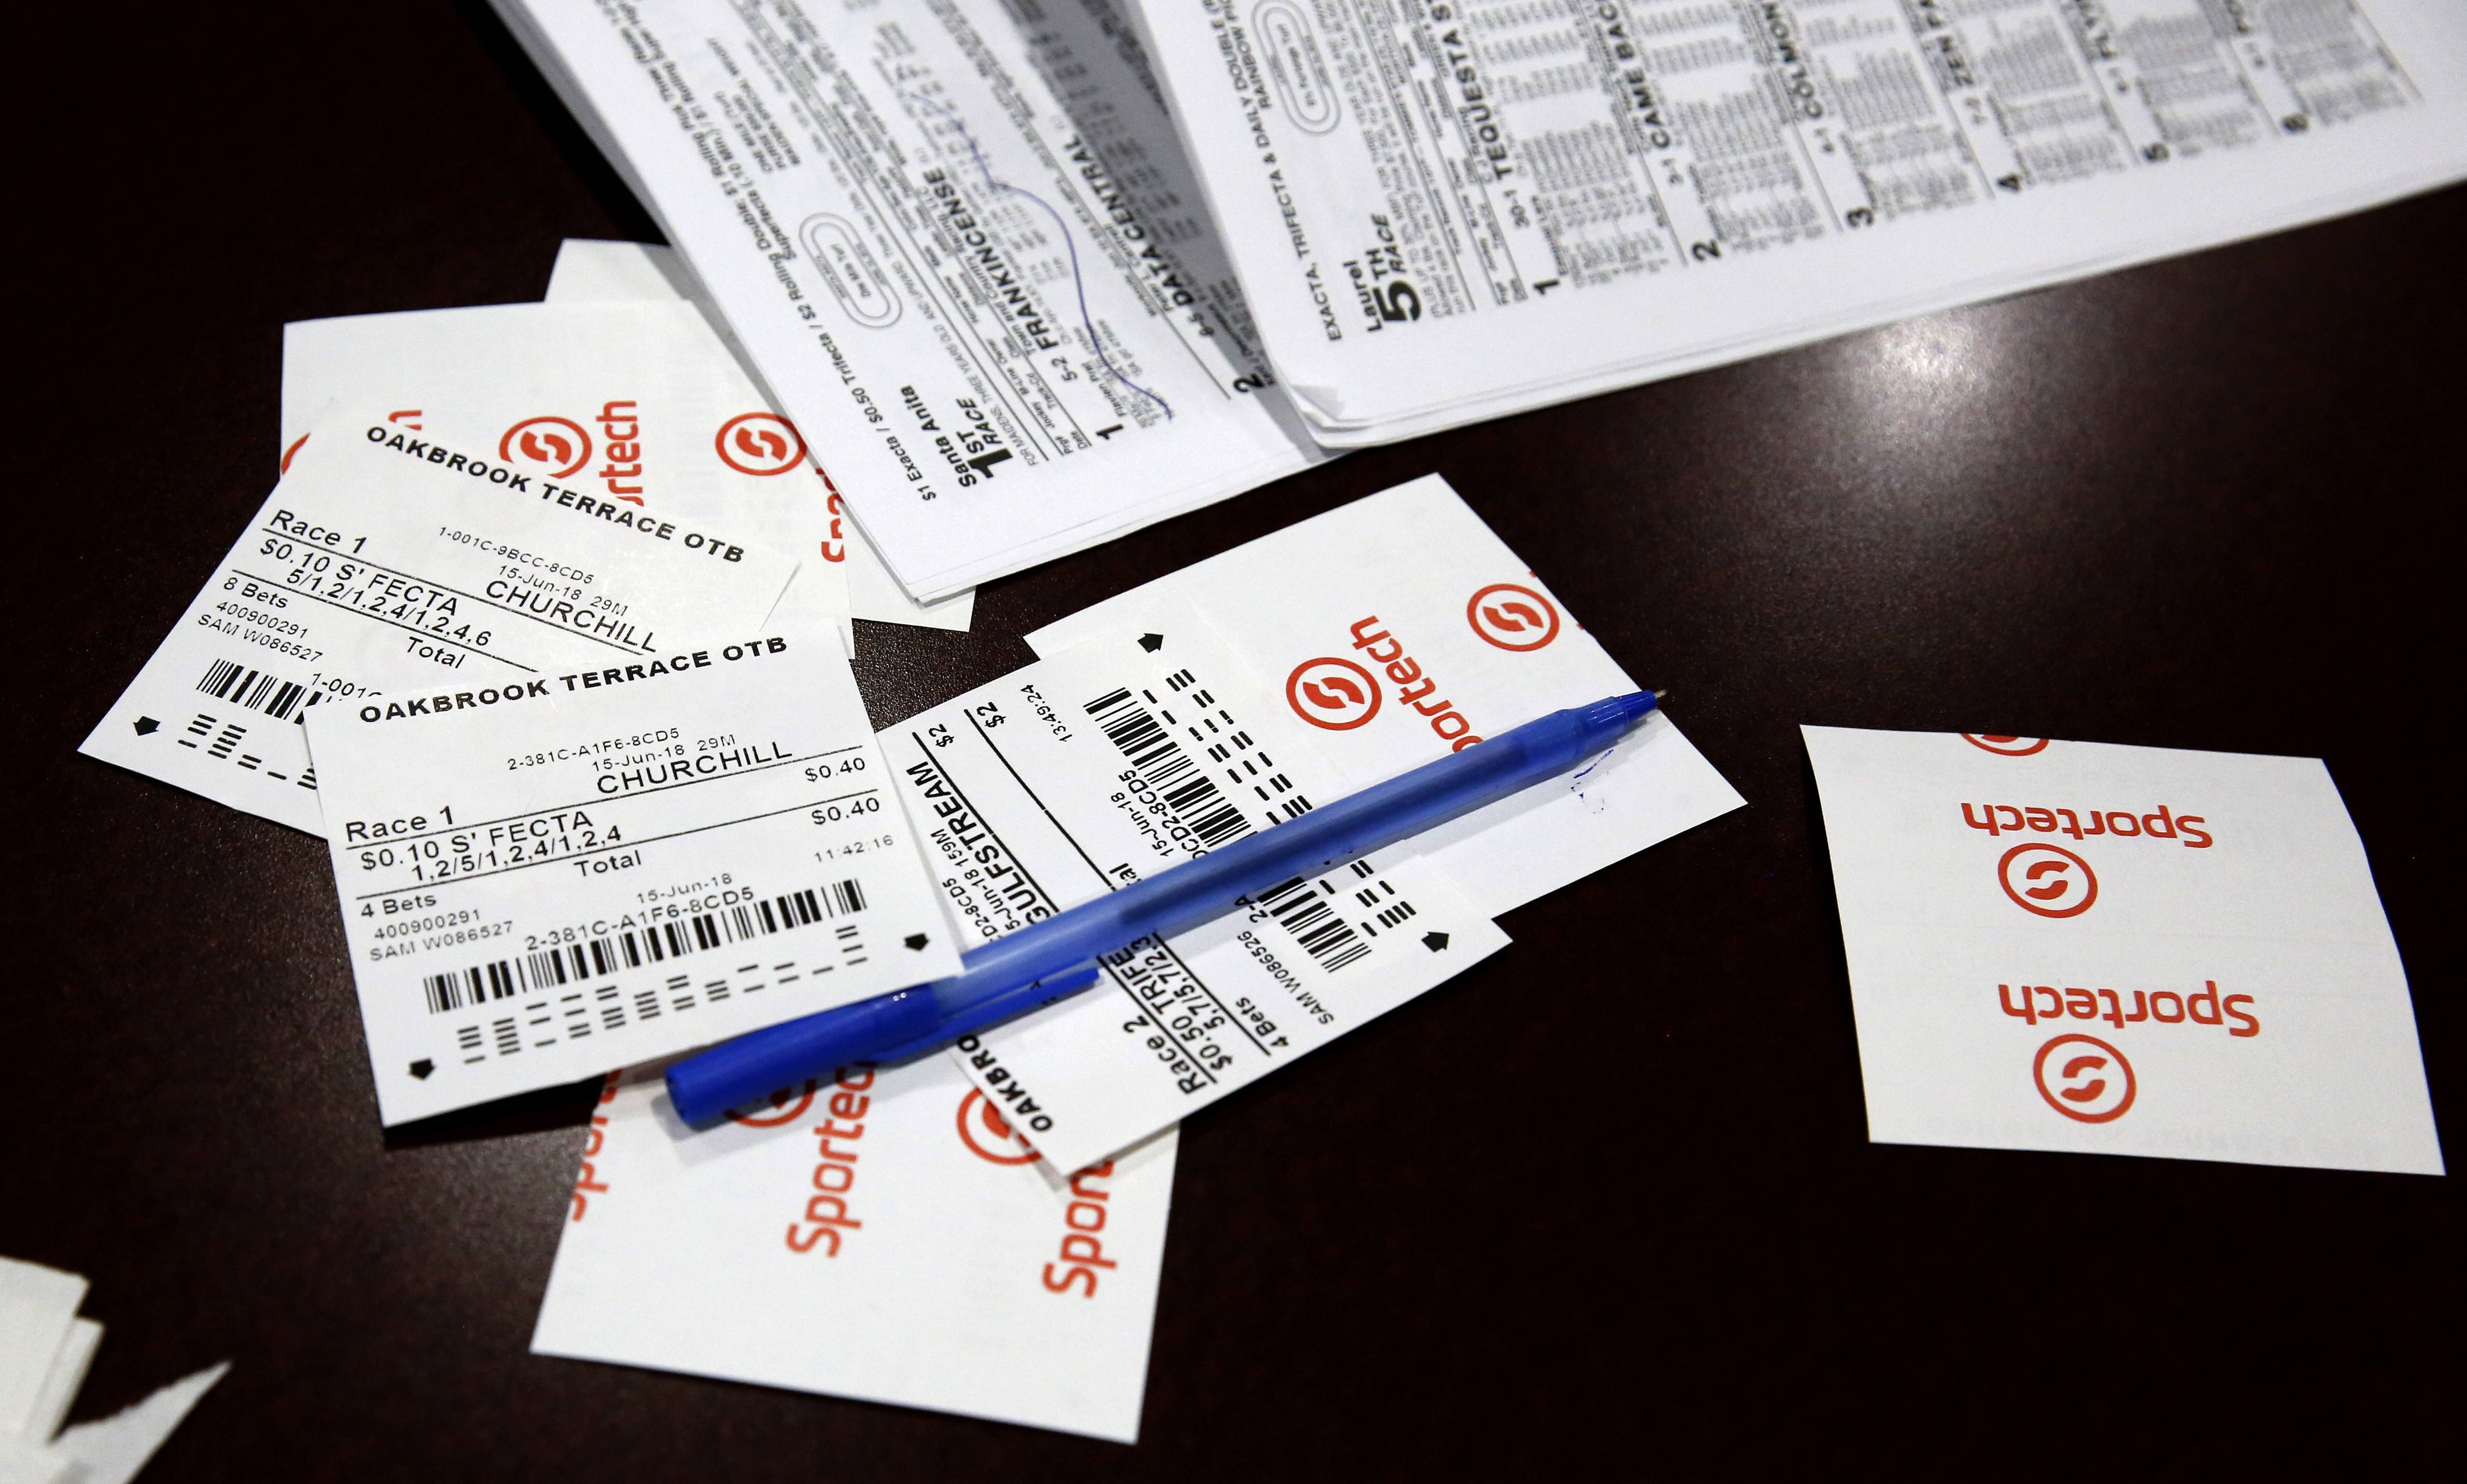 Losing betting slips at an Oakbrook Terrace off-track betting facility.